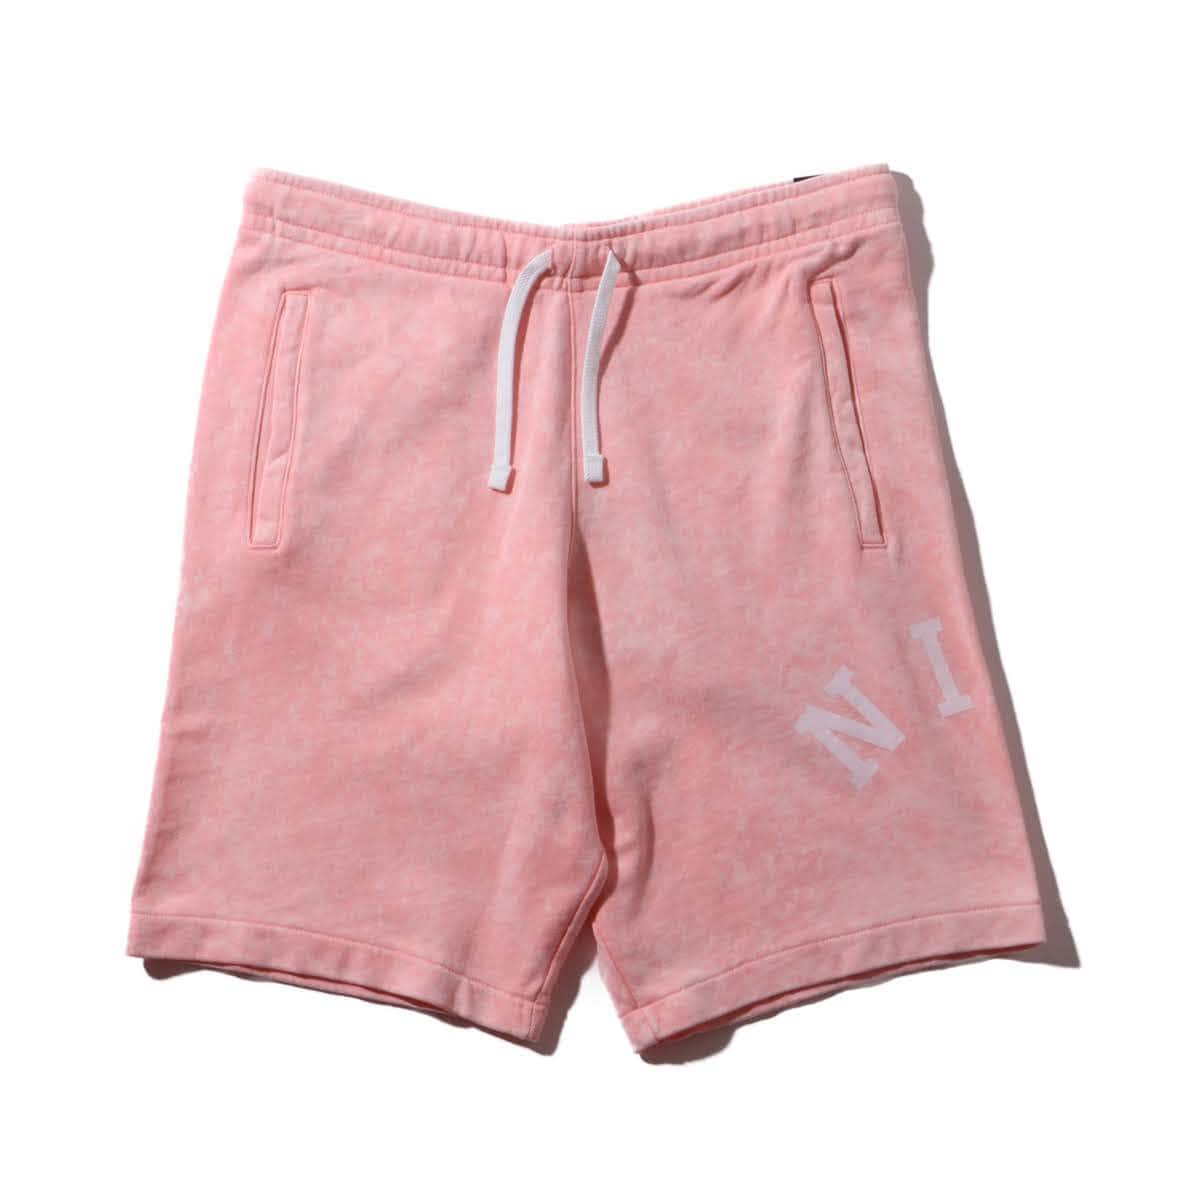 ef8247b76c57 NIKE AS M NSW CE SHORT FT WASH BLEACHED CORAL/SUMMIT WHITE 19SU-I